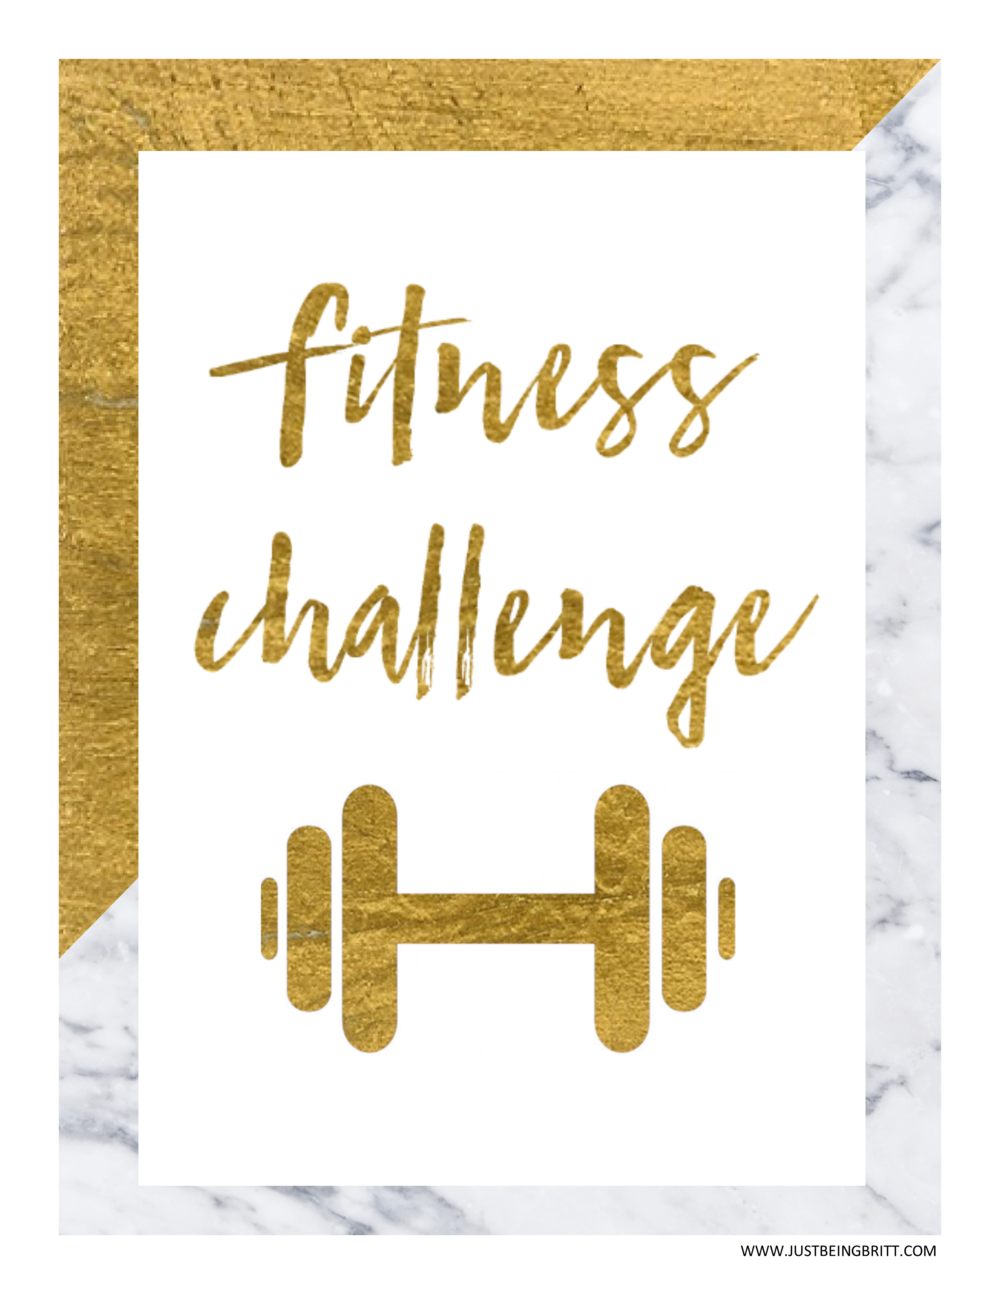 Fitness Lifestyle Blog Just Being Britt Fitness Challenge